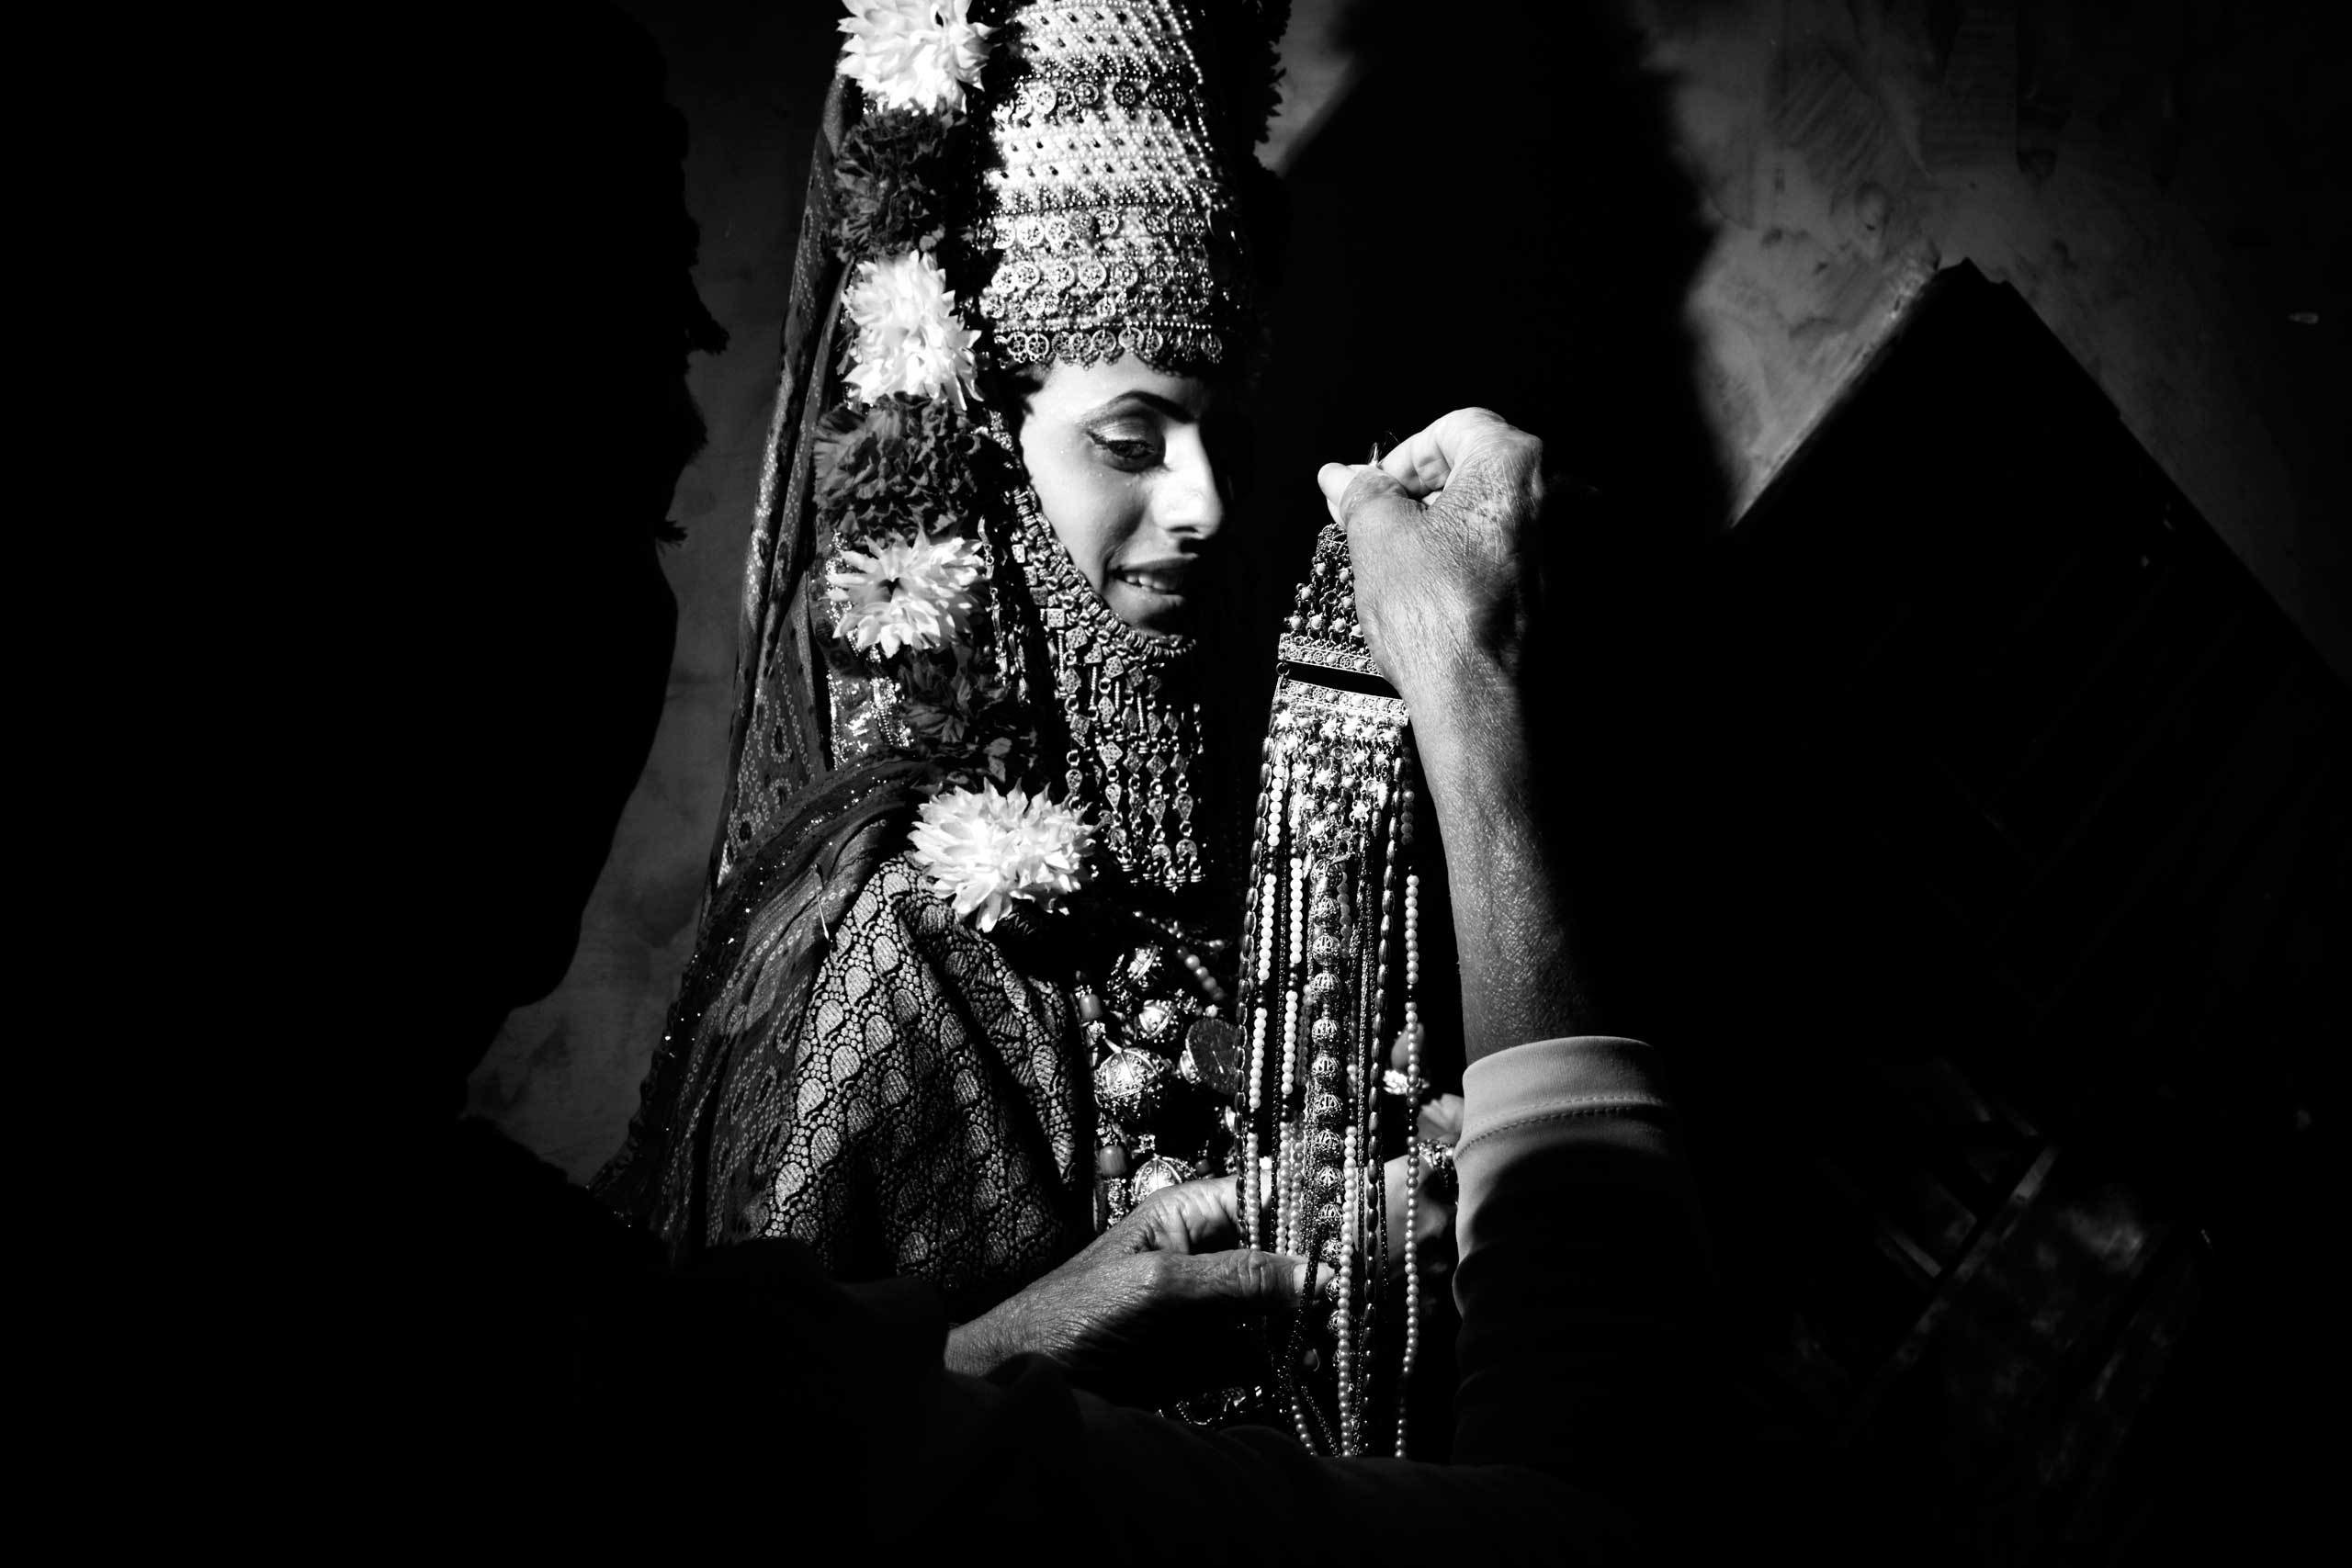 The henna is a pre-nuptial ceremony celebrated in Moroccan or Yemenite families where the soon-to-be bride is dressed-up as a Queen with flowers and jewels and she is inivited to dance with her girl friends to say good-bye to celibacy and life as a single young girl.  Meah Shearim, Jerusalem, July 2012.